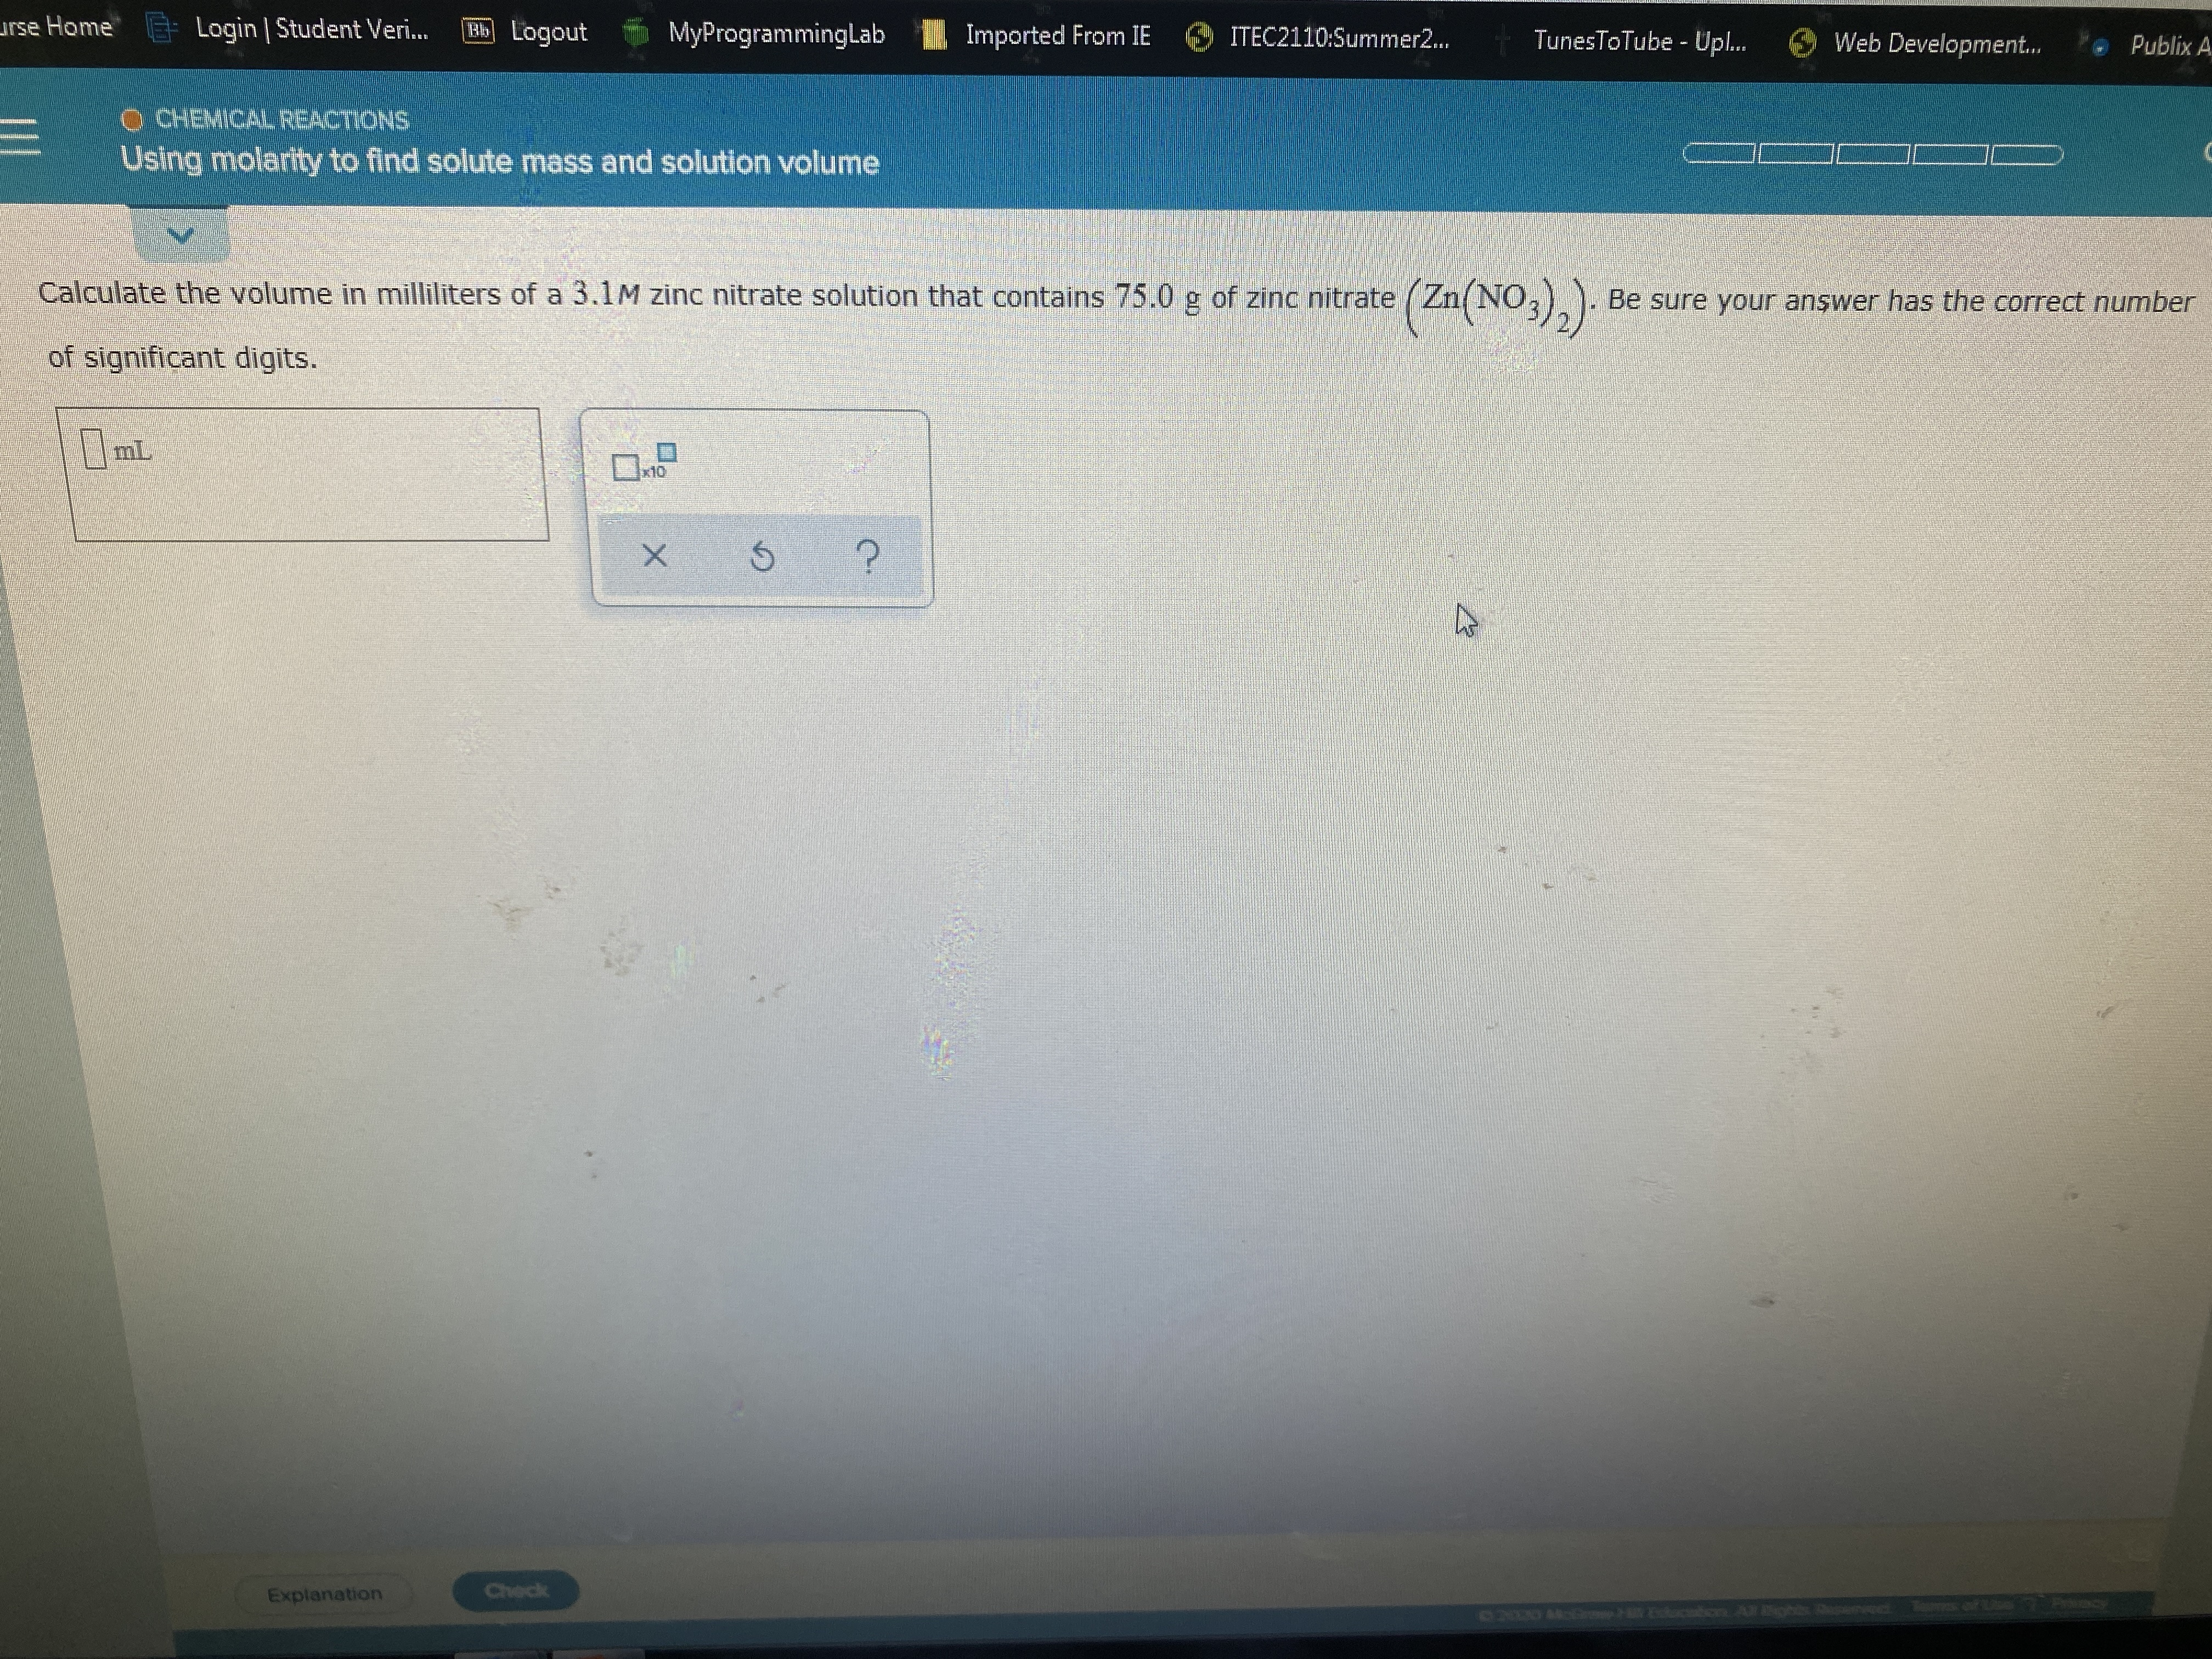 urse Home Login | Student Veri.. Bb Logout MyProgrammingLab Imported From IE ITEC2110:Summer2... TunesToTube - Upl.. O Web Development.. Publix A CHEMICAL REACTIONS Using molarity to find solute mass and solution volume (Za(NO.). Calculate the volume in milliliters of a 3.1M zinc nitrate solution that contains 75.0 g of zinc nitrate Be sure your anşwer has the correct number of significant digits. 0m x10 Explanation Check 2000 A octon Aohs n Te s of L 7 Prcy